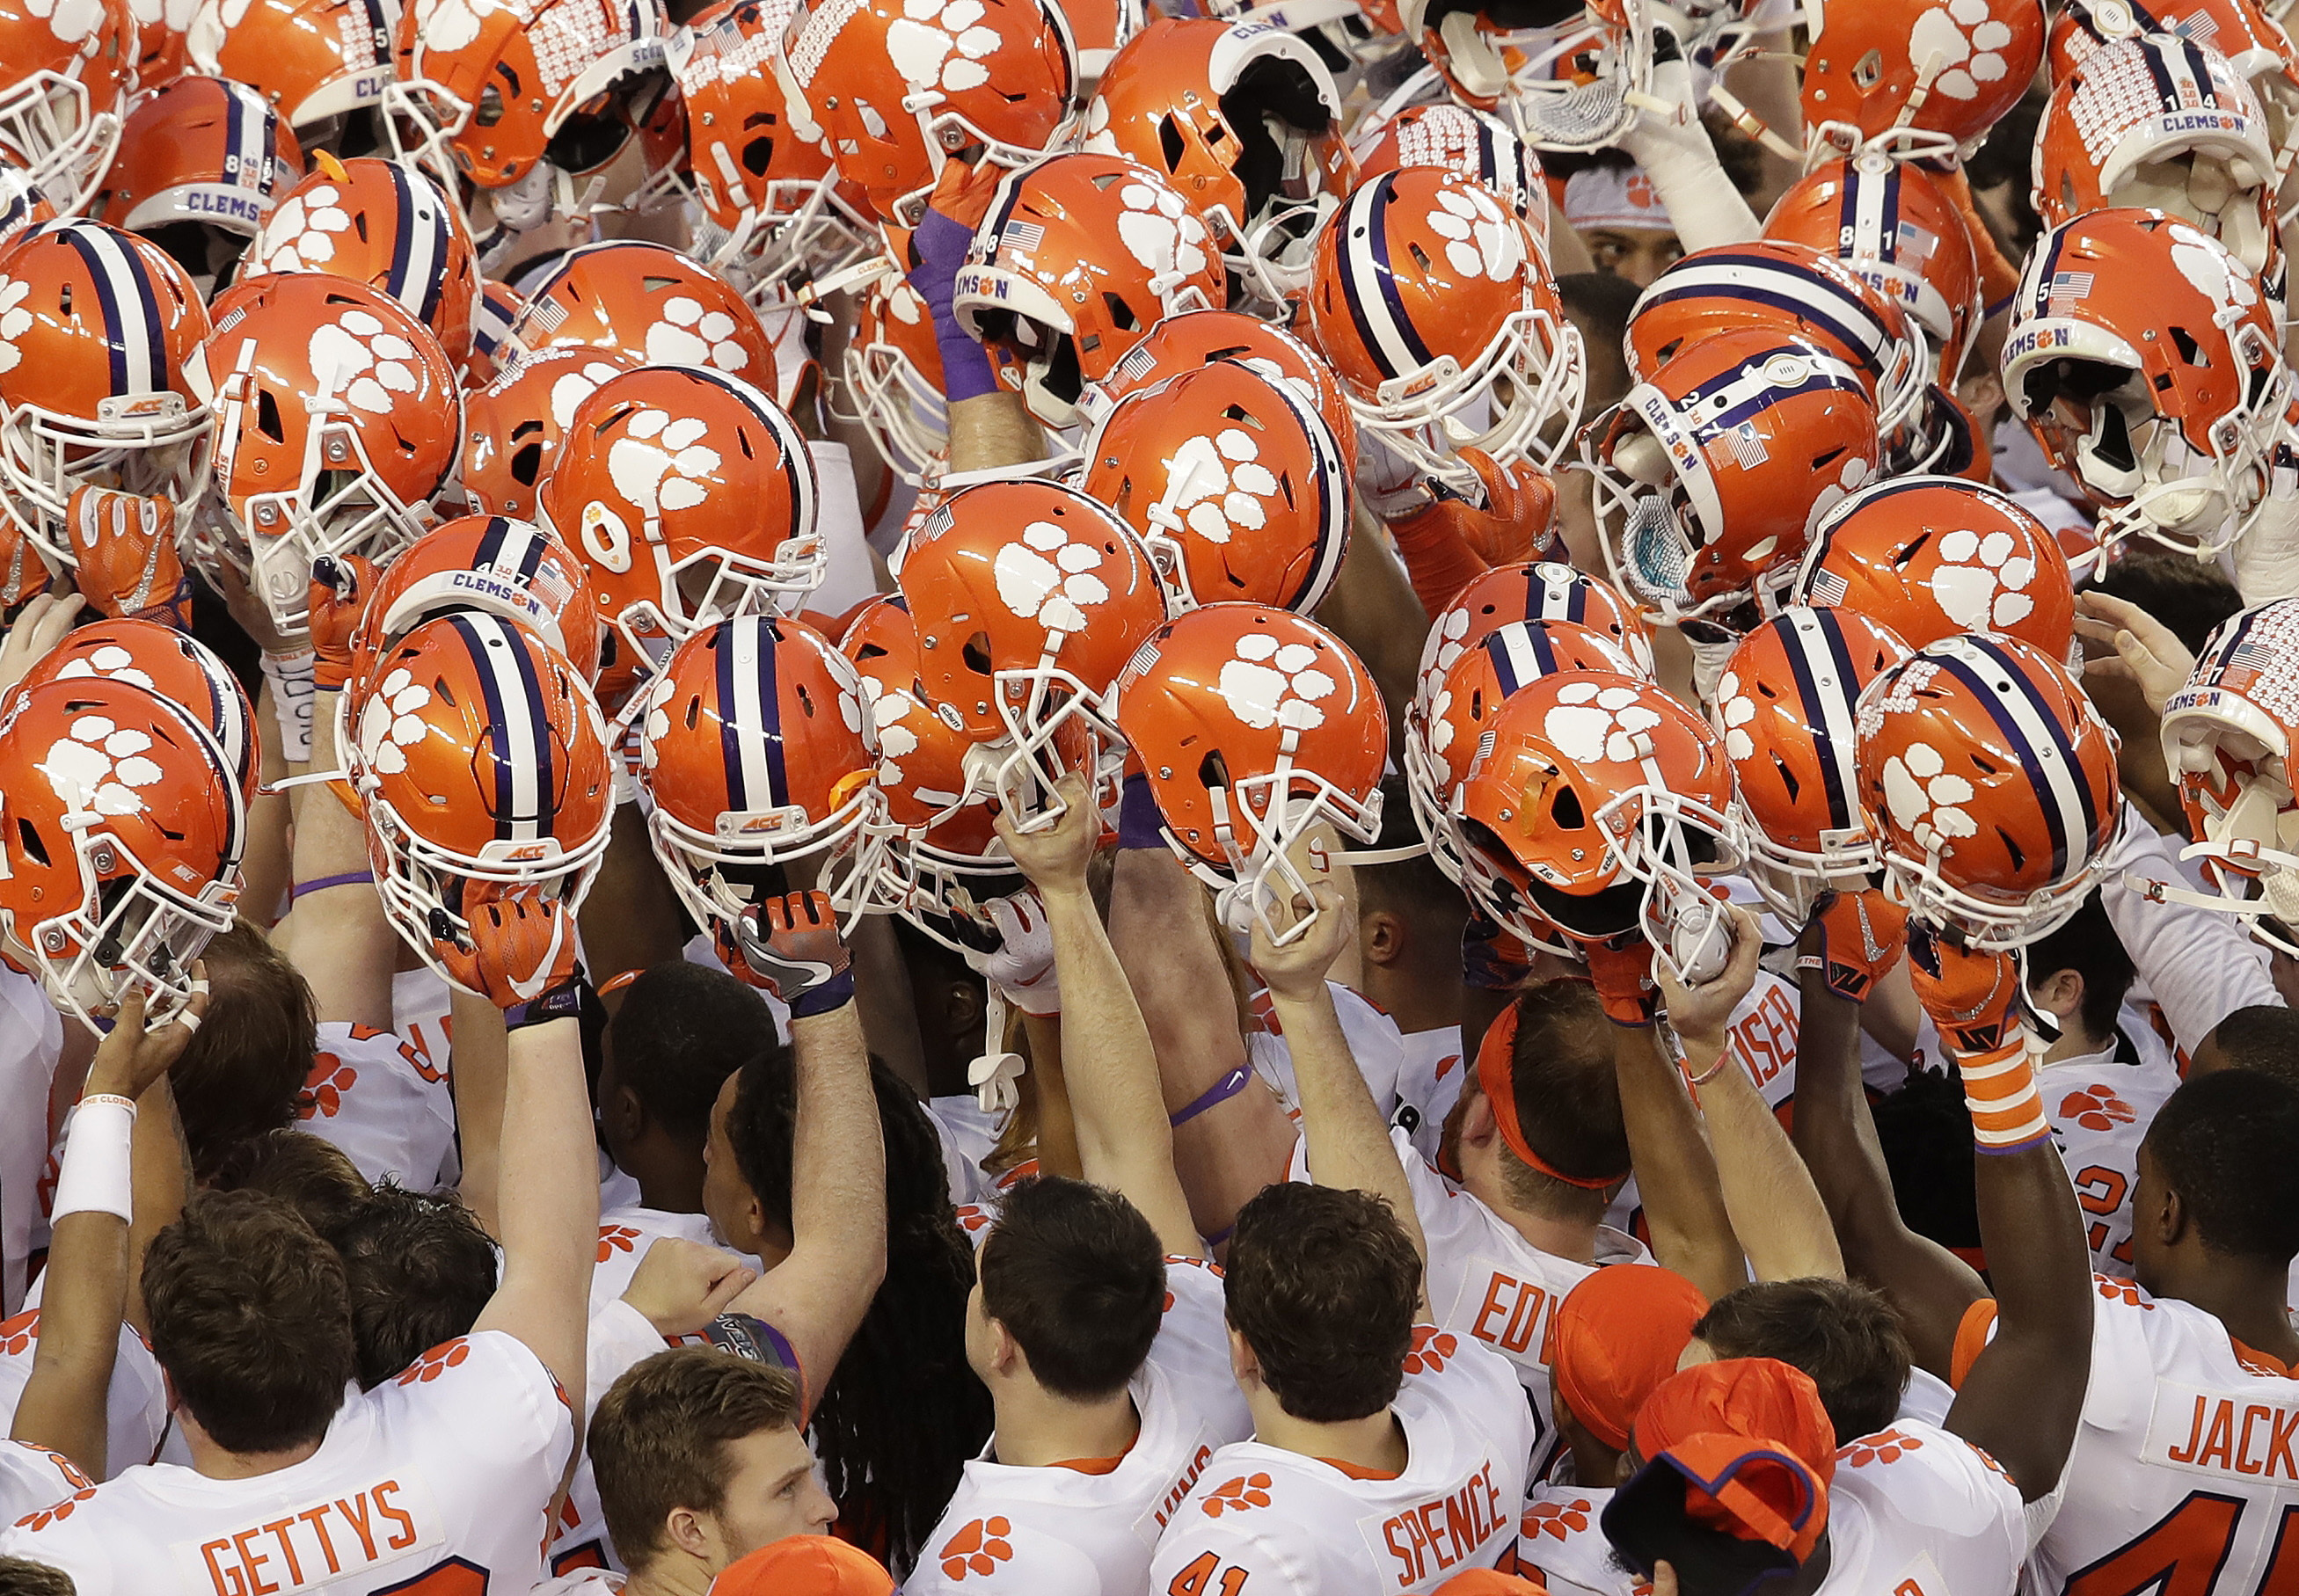 Clemson vs south carolina betting line 2021 jeep what happens when 21 million bitcoins are mined craft